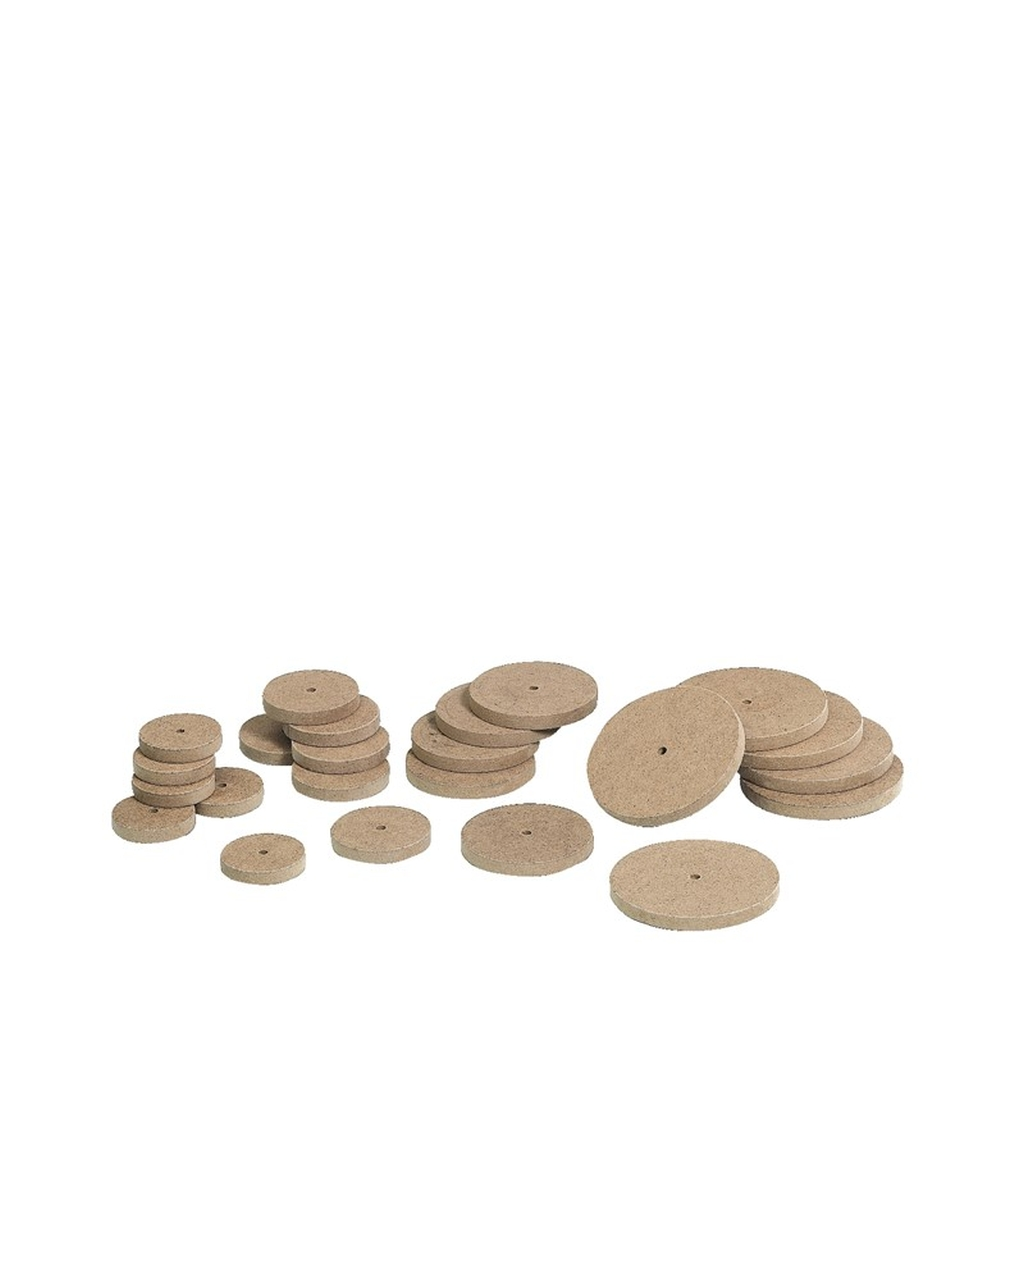 30mm MDF Board Wheels